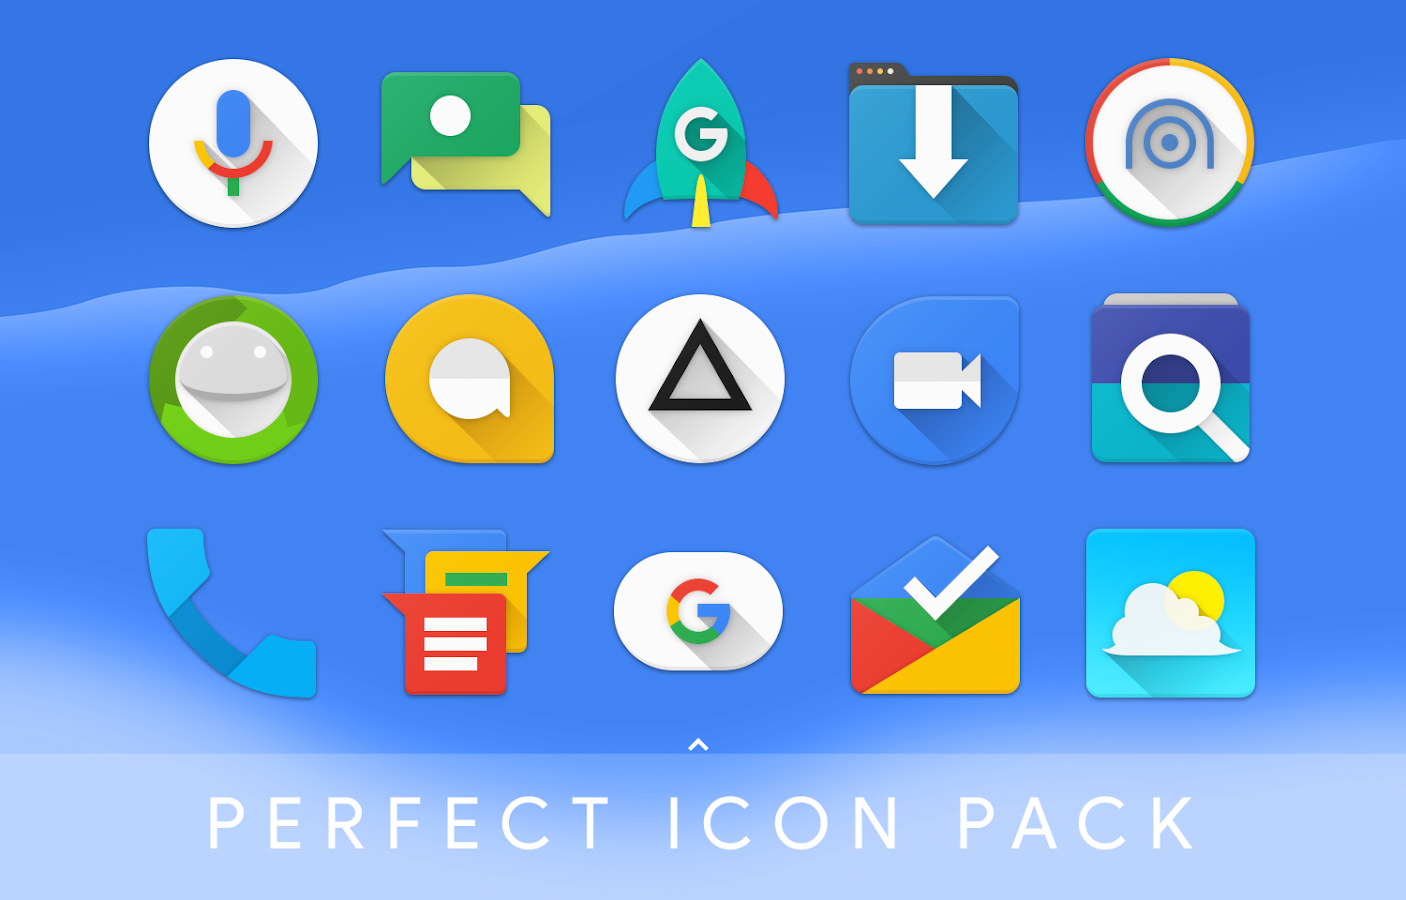 Perfect Icon Pack Screenshot 14